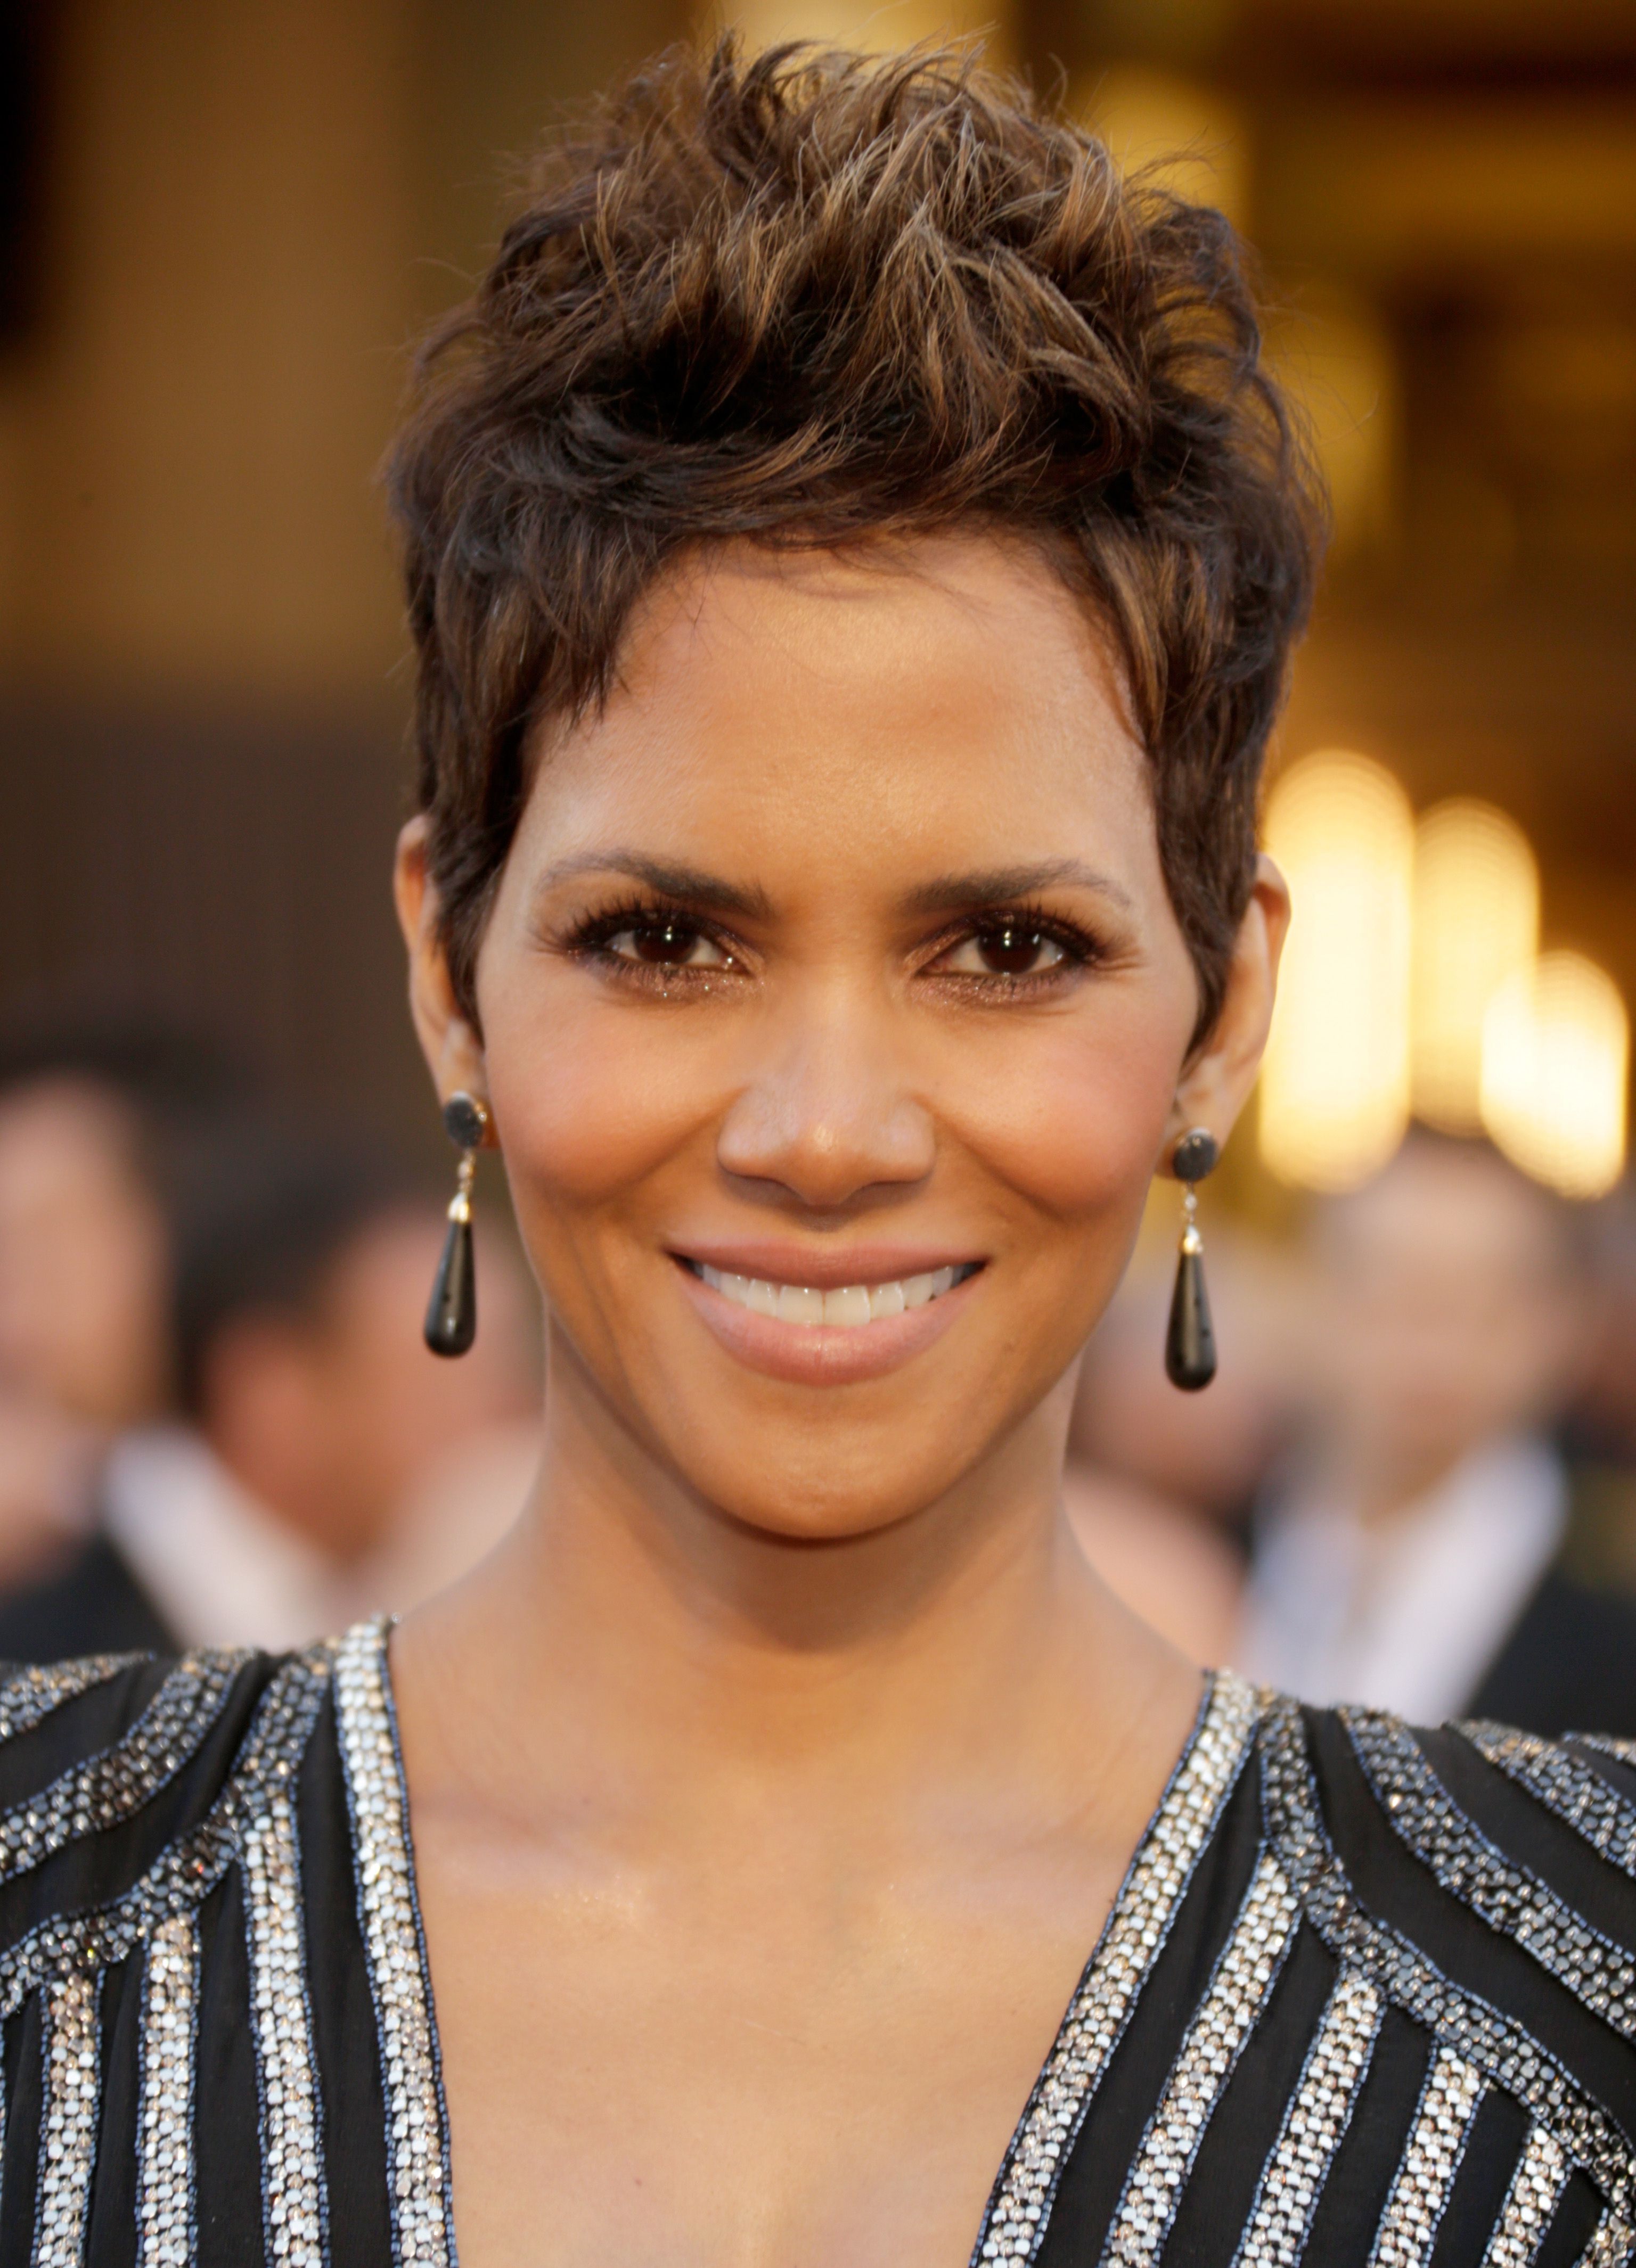 20 Classic And Cool Short Hairstyles For Older Women Regarding Pixie Haircuts With Bangs And Loose Curls (View 2 of 20)